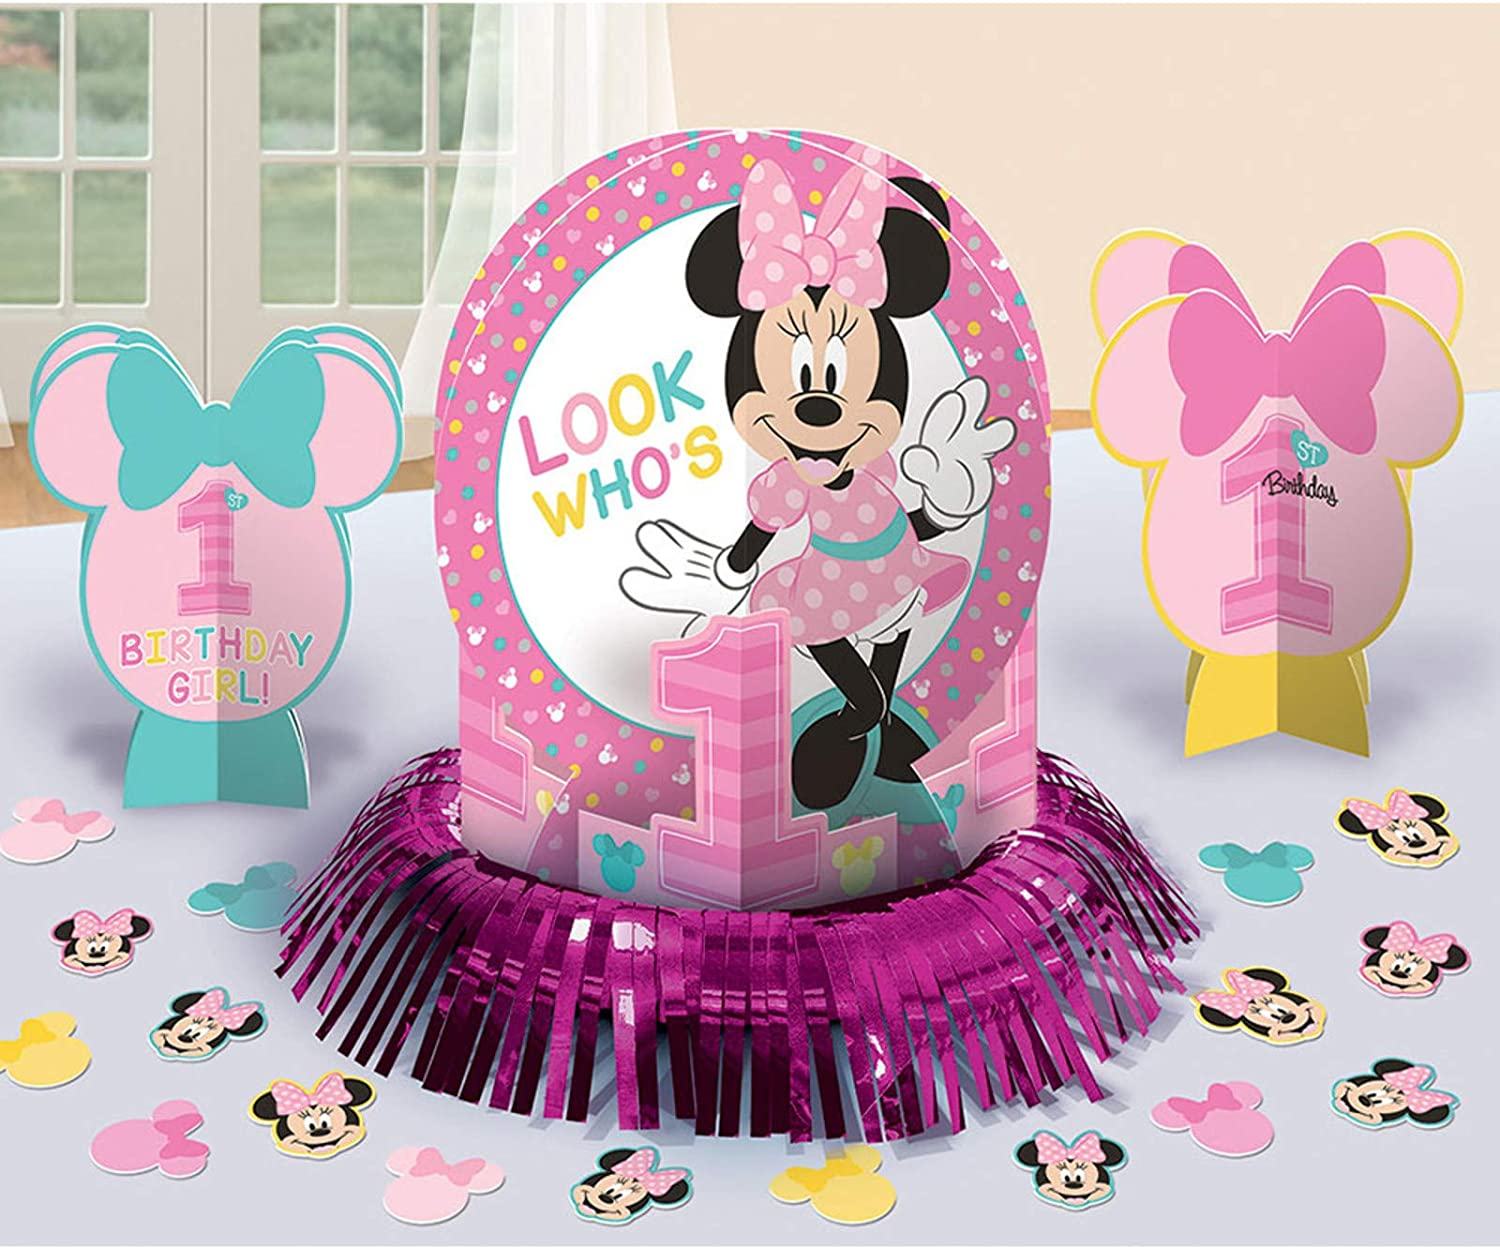 Amazon.com: Minnie Mouse - Decoración para mesa de primer ...